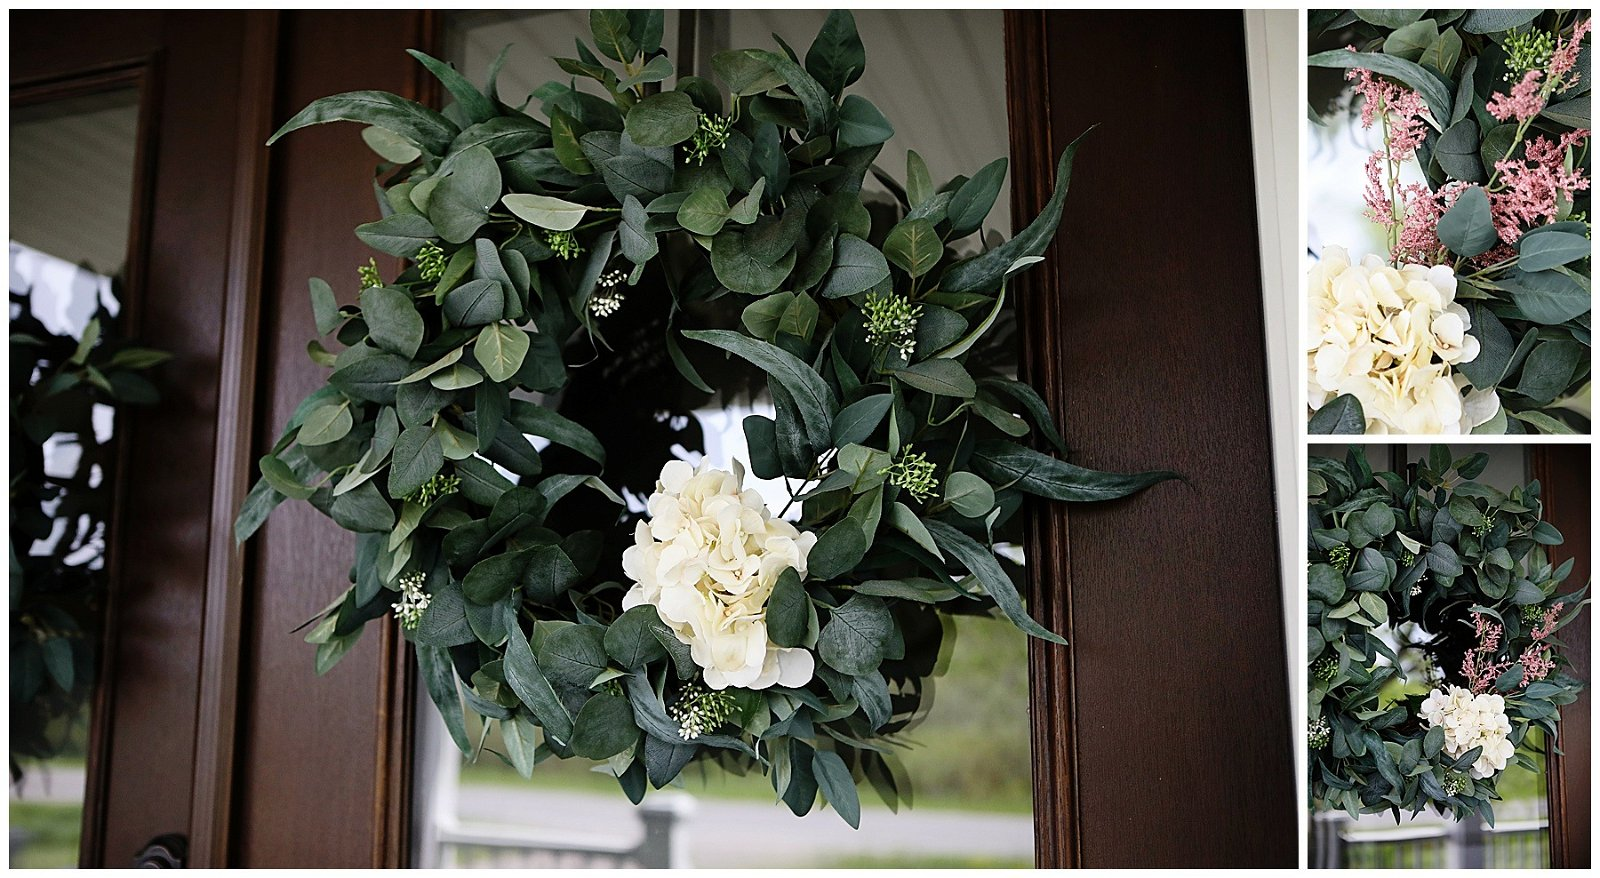 Hearth & Hand Eucalyptus Wreaths Update/Refresh